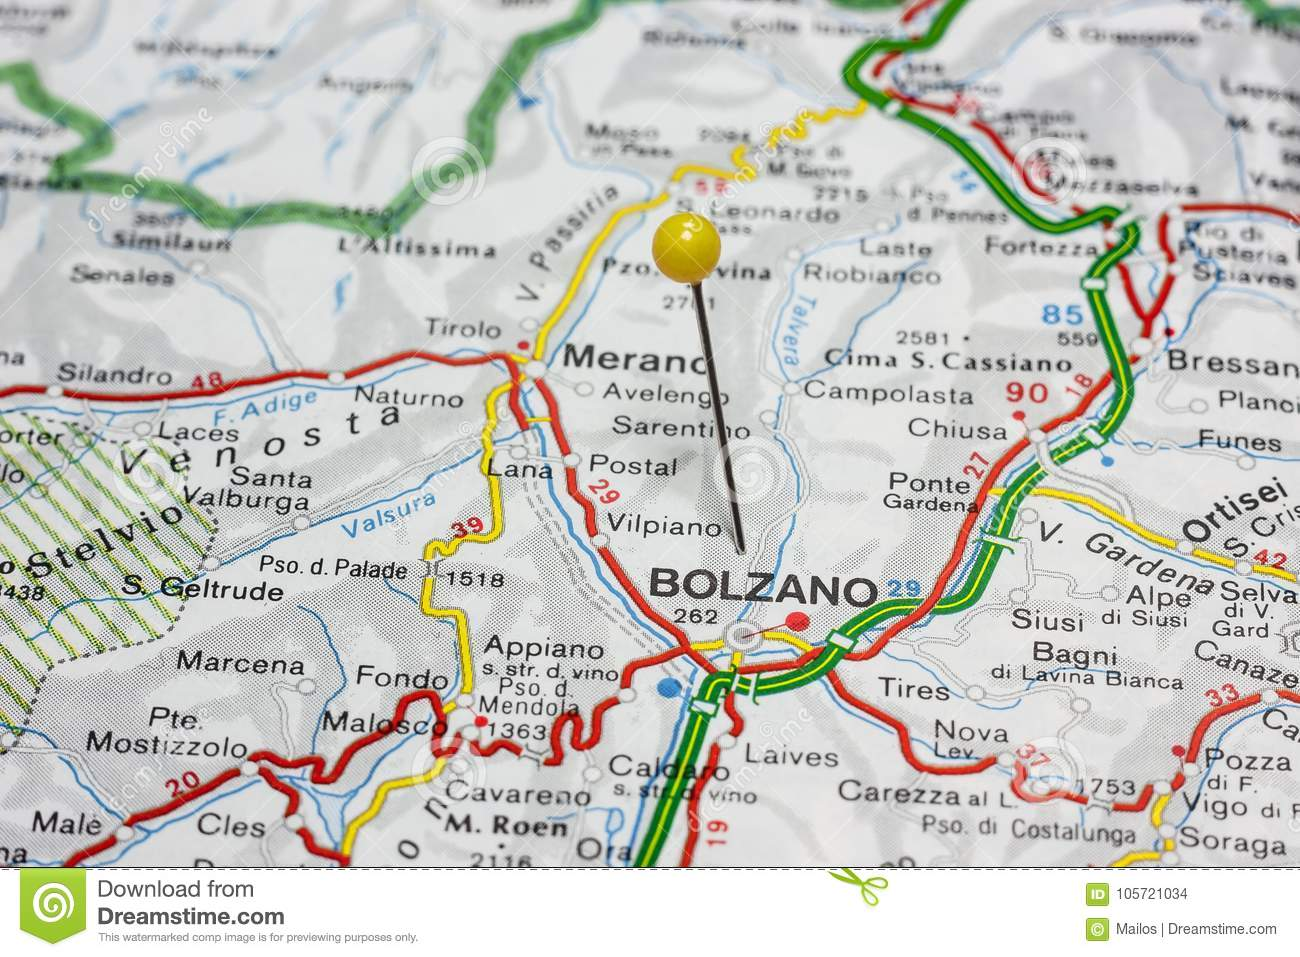 Bolzano Pinned On A Map Of Italy Stock Photo - Image of travel ... on detailed map of positano italy, detailed map of lazio italy, detailed map of texas cities, detailed map of northern italy, detailed map southern italy, detailed map of calabria italy, all of italy maps with cities, detailed map of italy print, italy and cities, detailed map of tuscany italy, detailed map of massachusetts cities, detailed map florence italy, detailed map of africa, detailed map asia, detailed map of southern spain, detailed map venice italy,